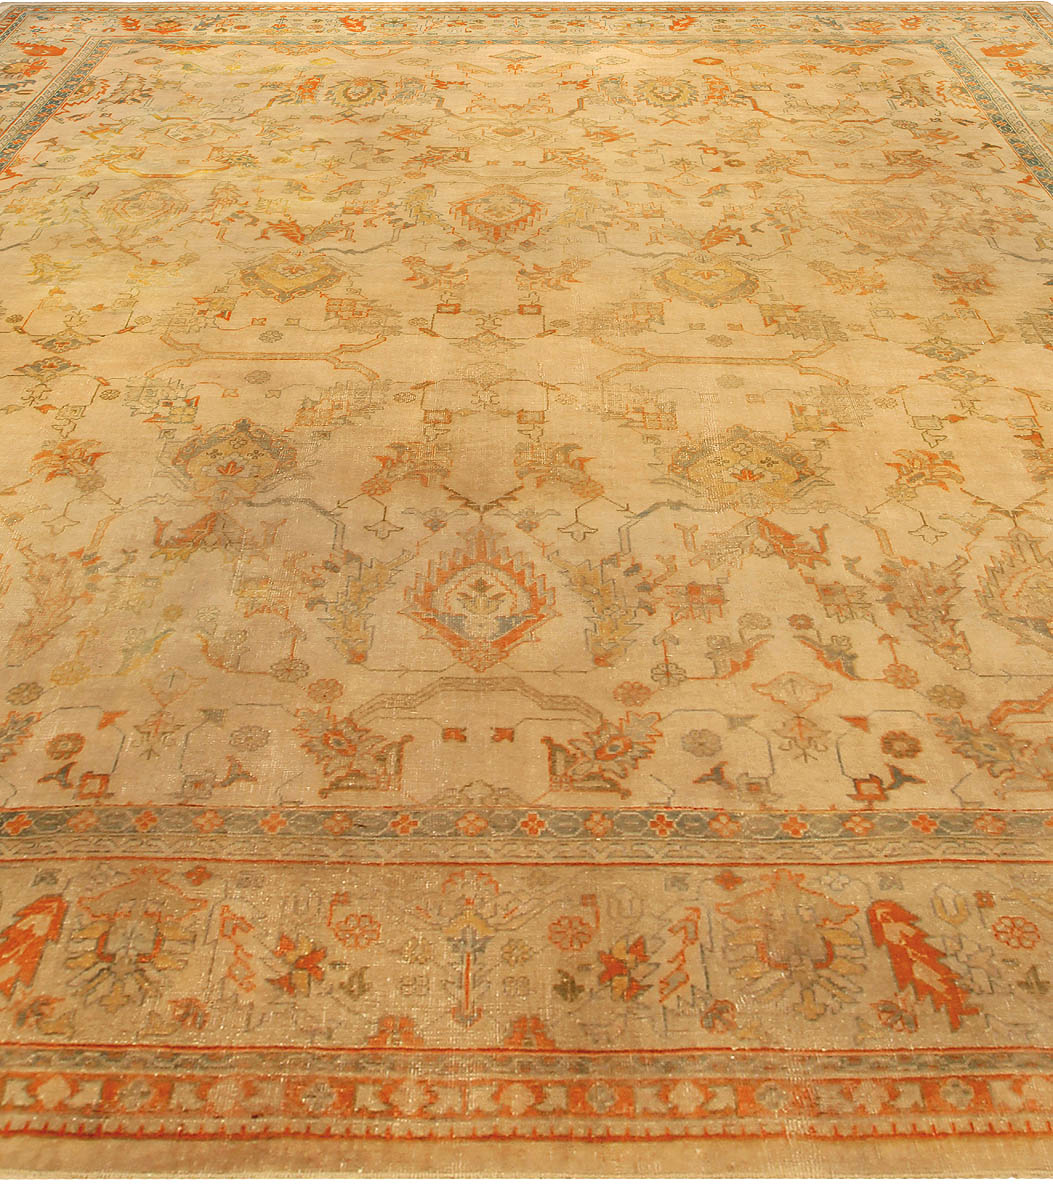 Turkish Oushak Light Tan, Orange & Soft Teal Blue Rug Size Adjusted BB5155